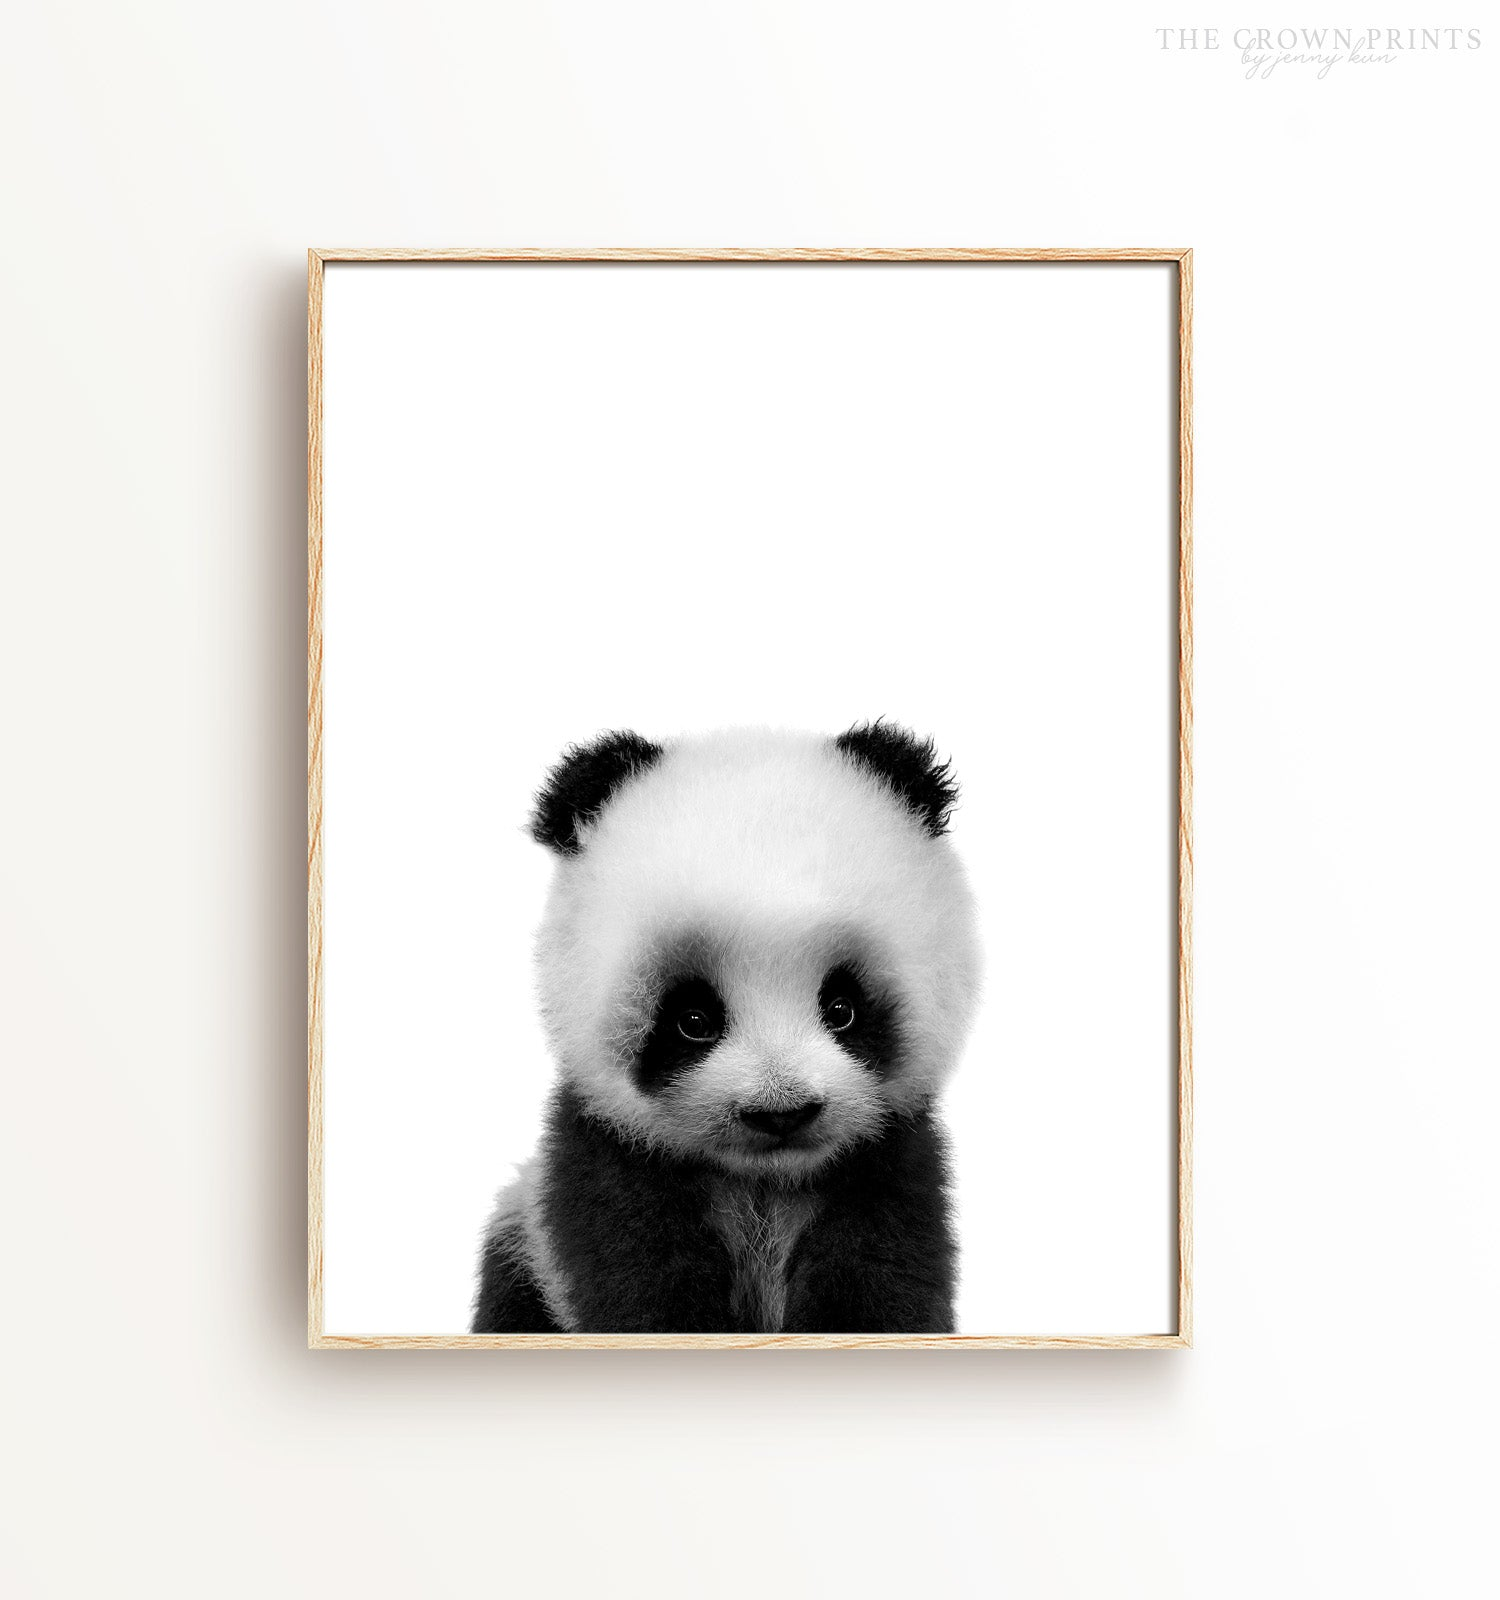 Baby panda print black and white the crown prints